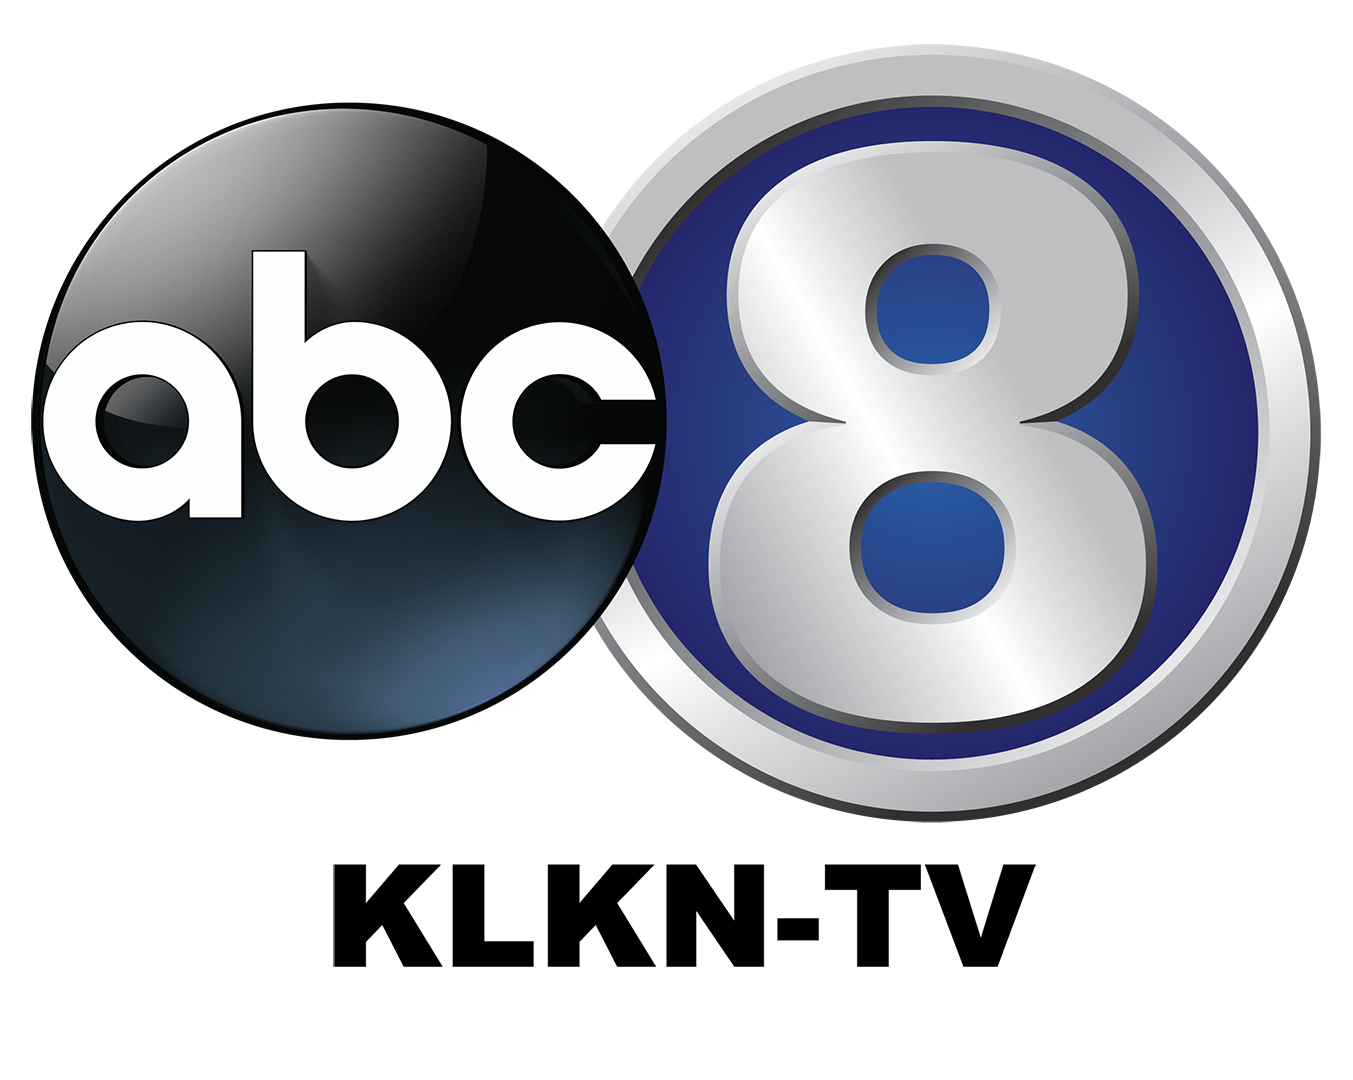 Channel 8 logo